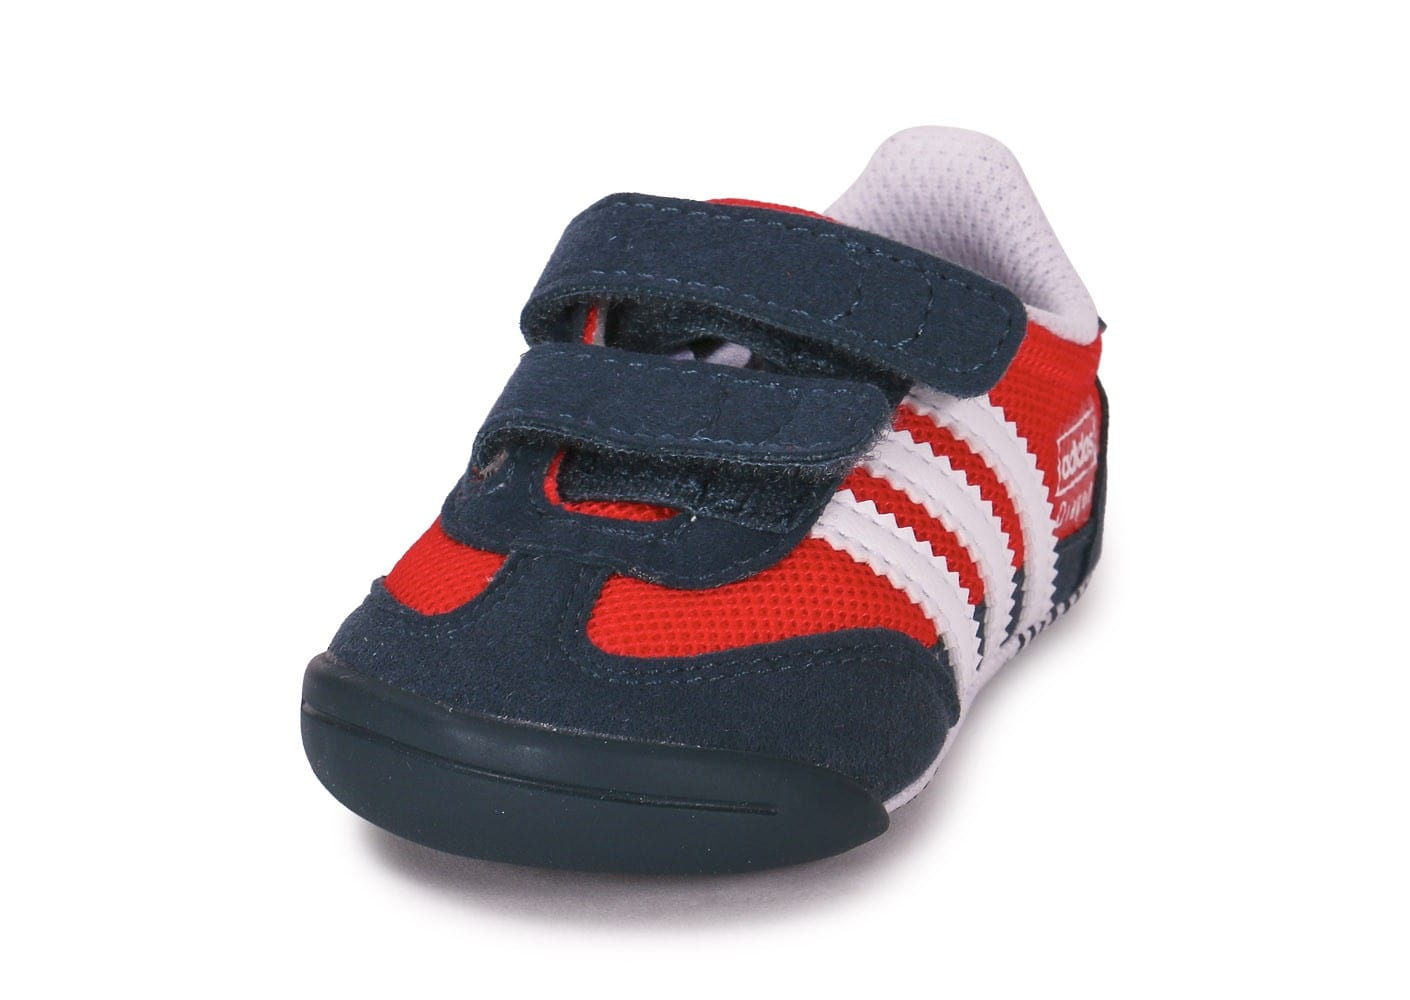 save up to 80% really cheap run shoes adidas Dragon Bébé Bleu Marine Et Rouge - Chaussures adidas ...